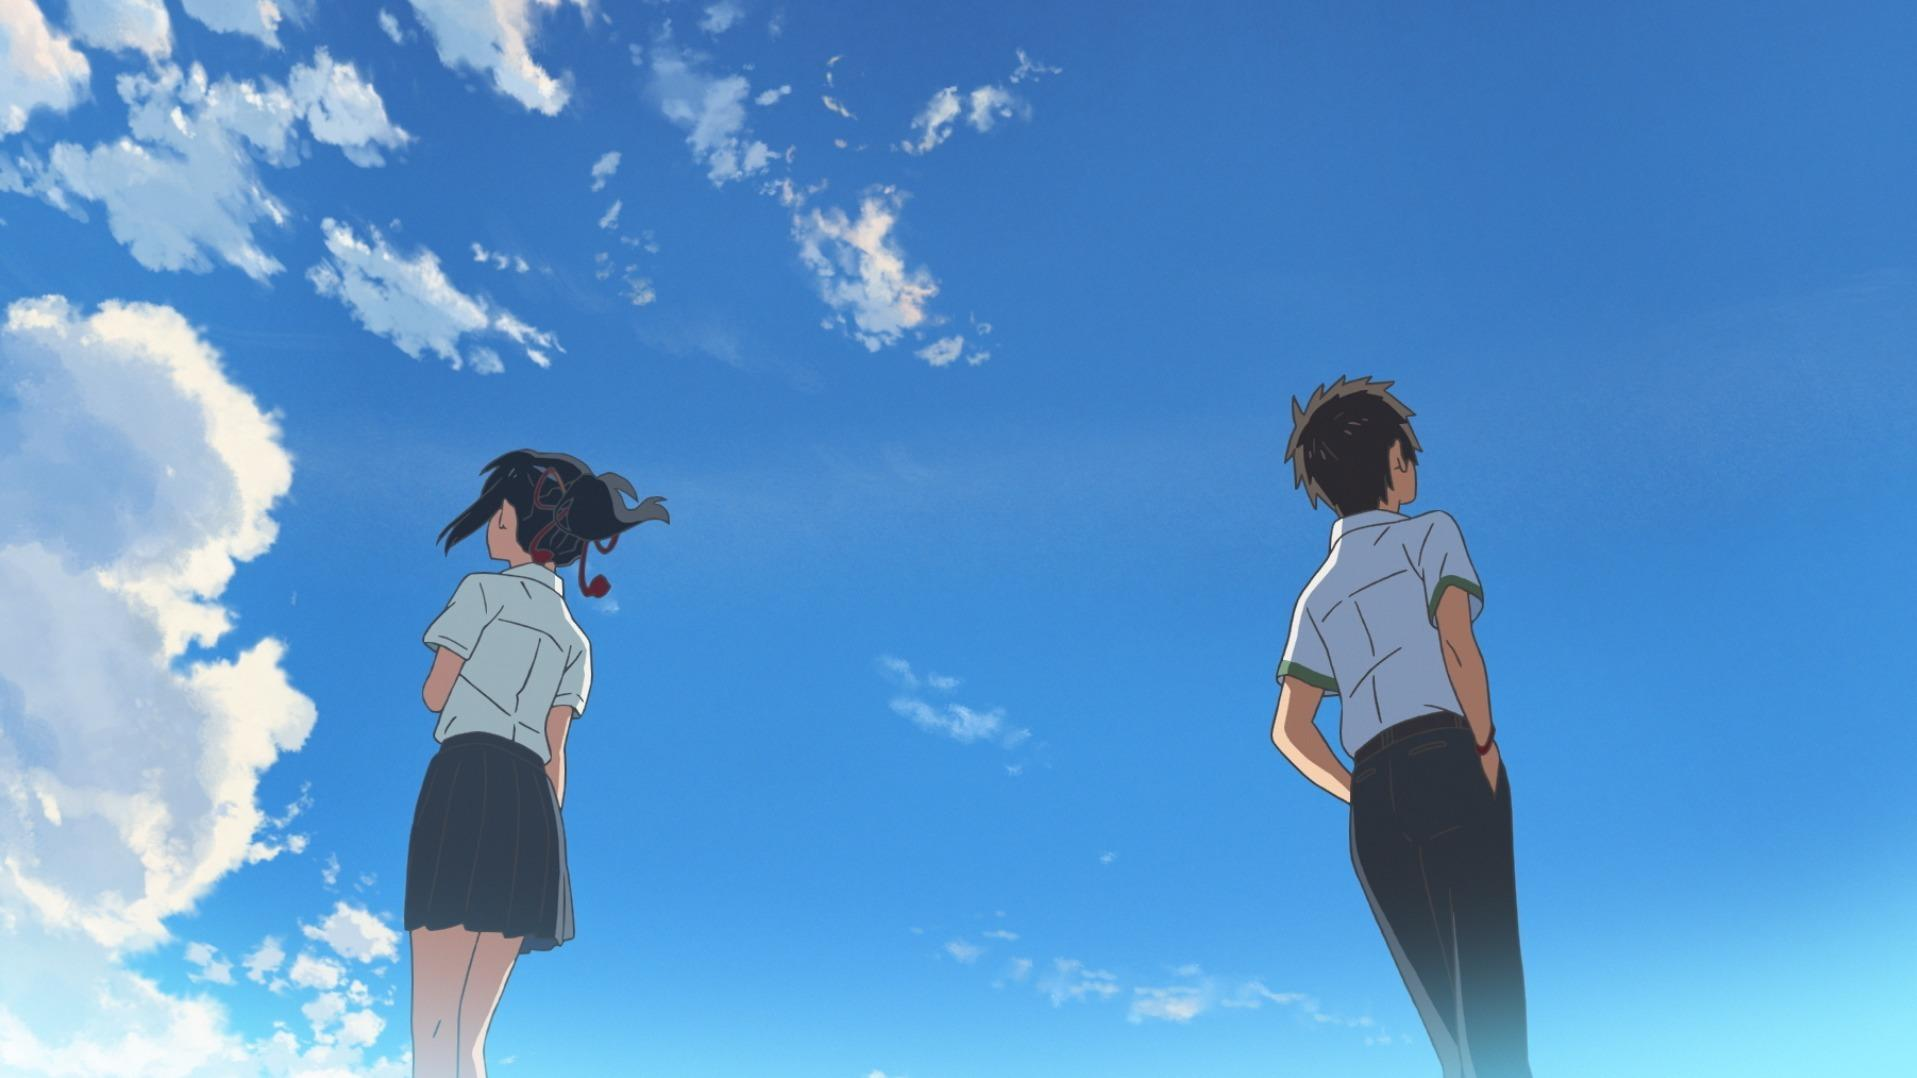 a body-switching teen romance anime disaster flick with 'your name